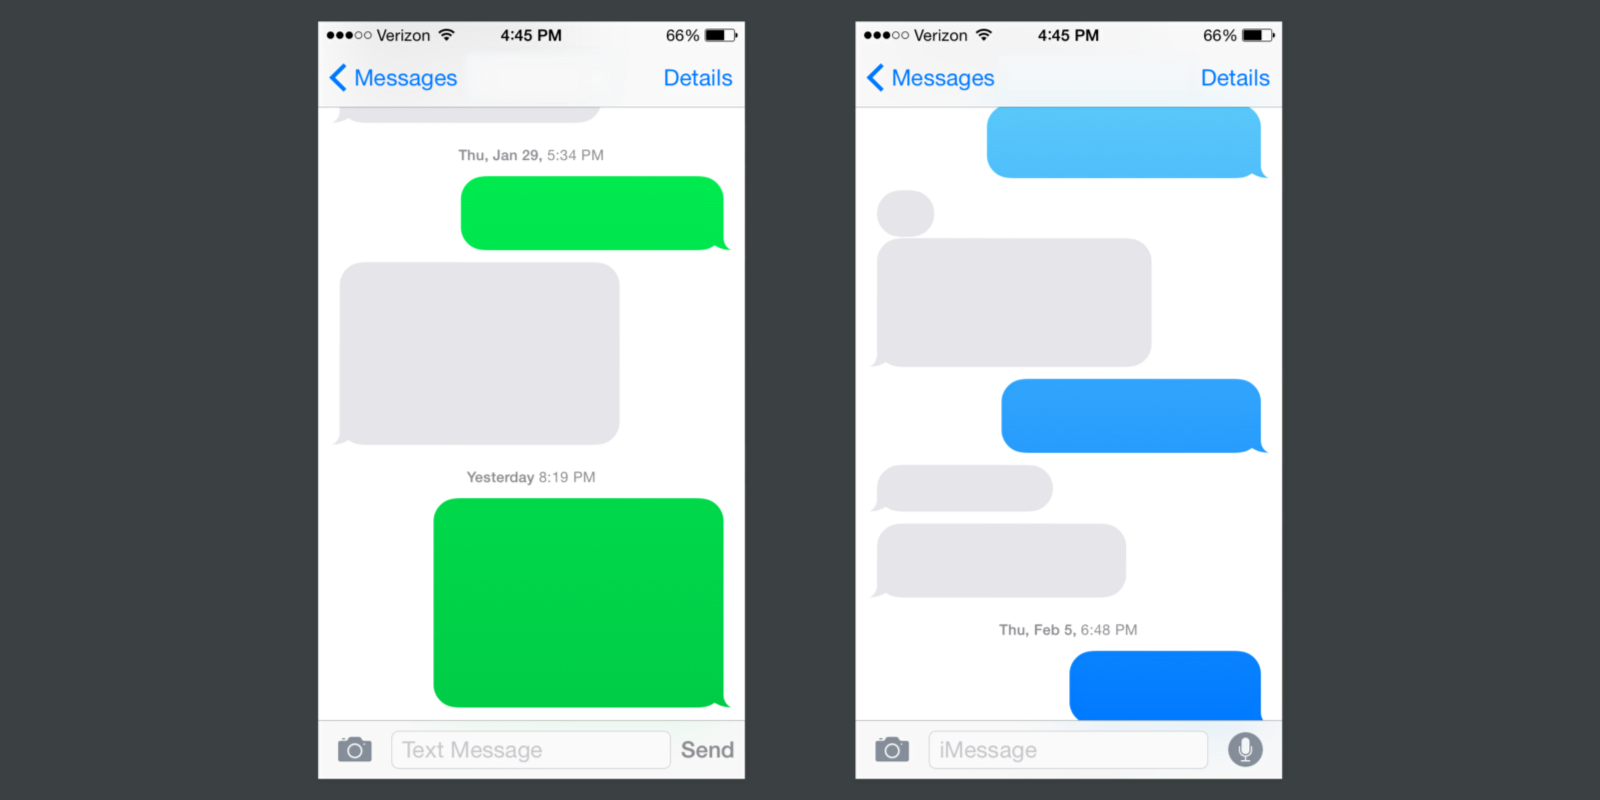 iphone to android imessage on colors gradients and chat bubbles eli schiff medium 15488